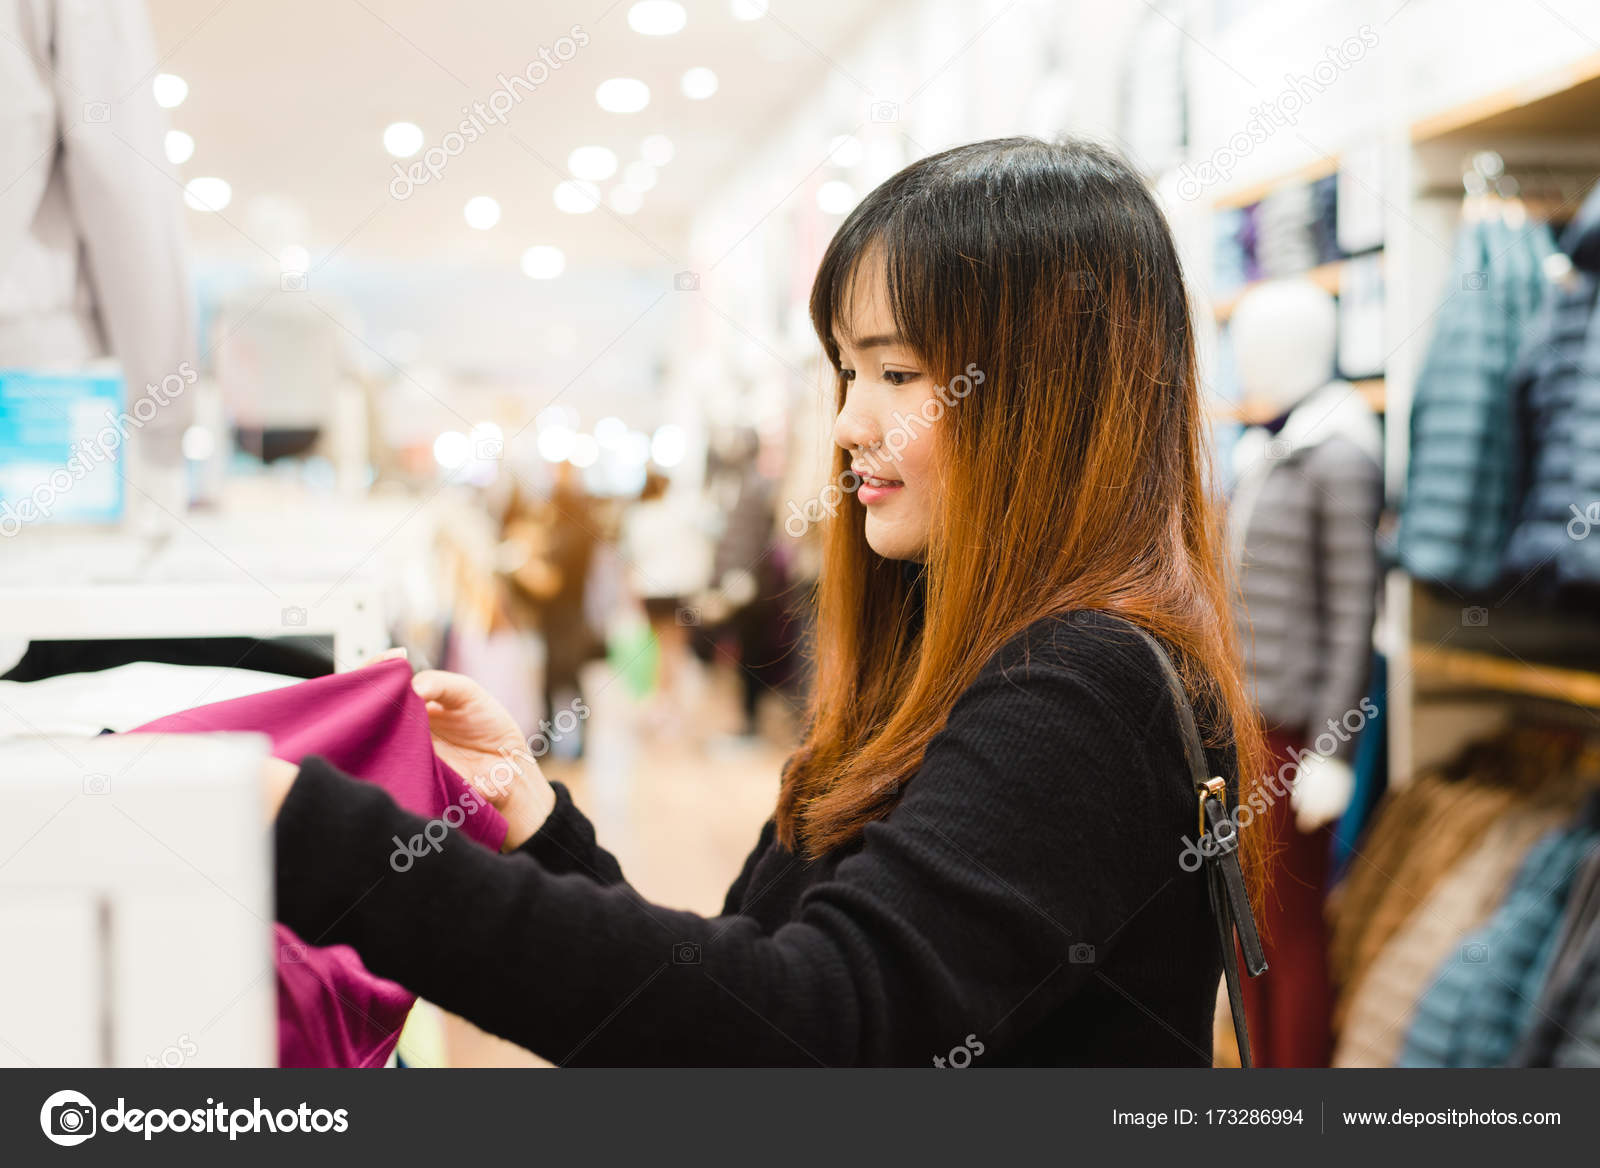 c12858f98bb Half body shot of a happy asian young woman with shoulder bag looking at  clothes hanging on the rail inside the clothing shop.